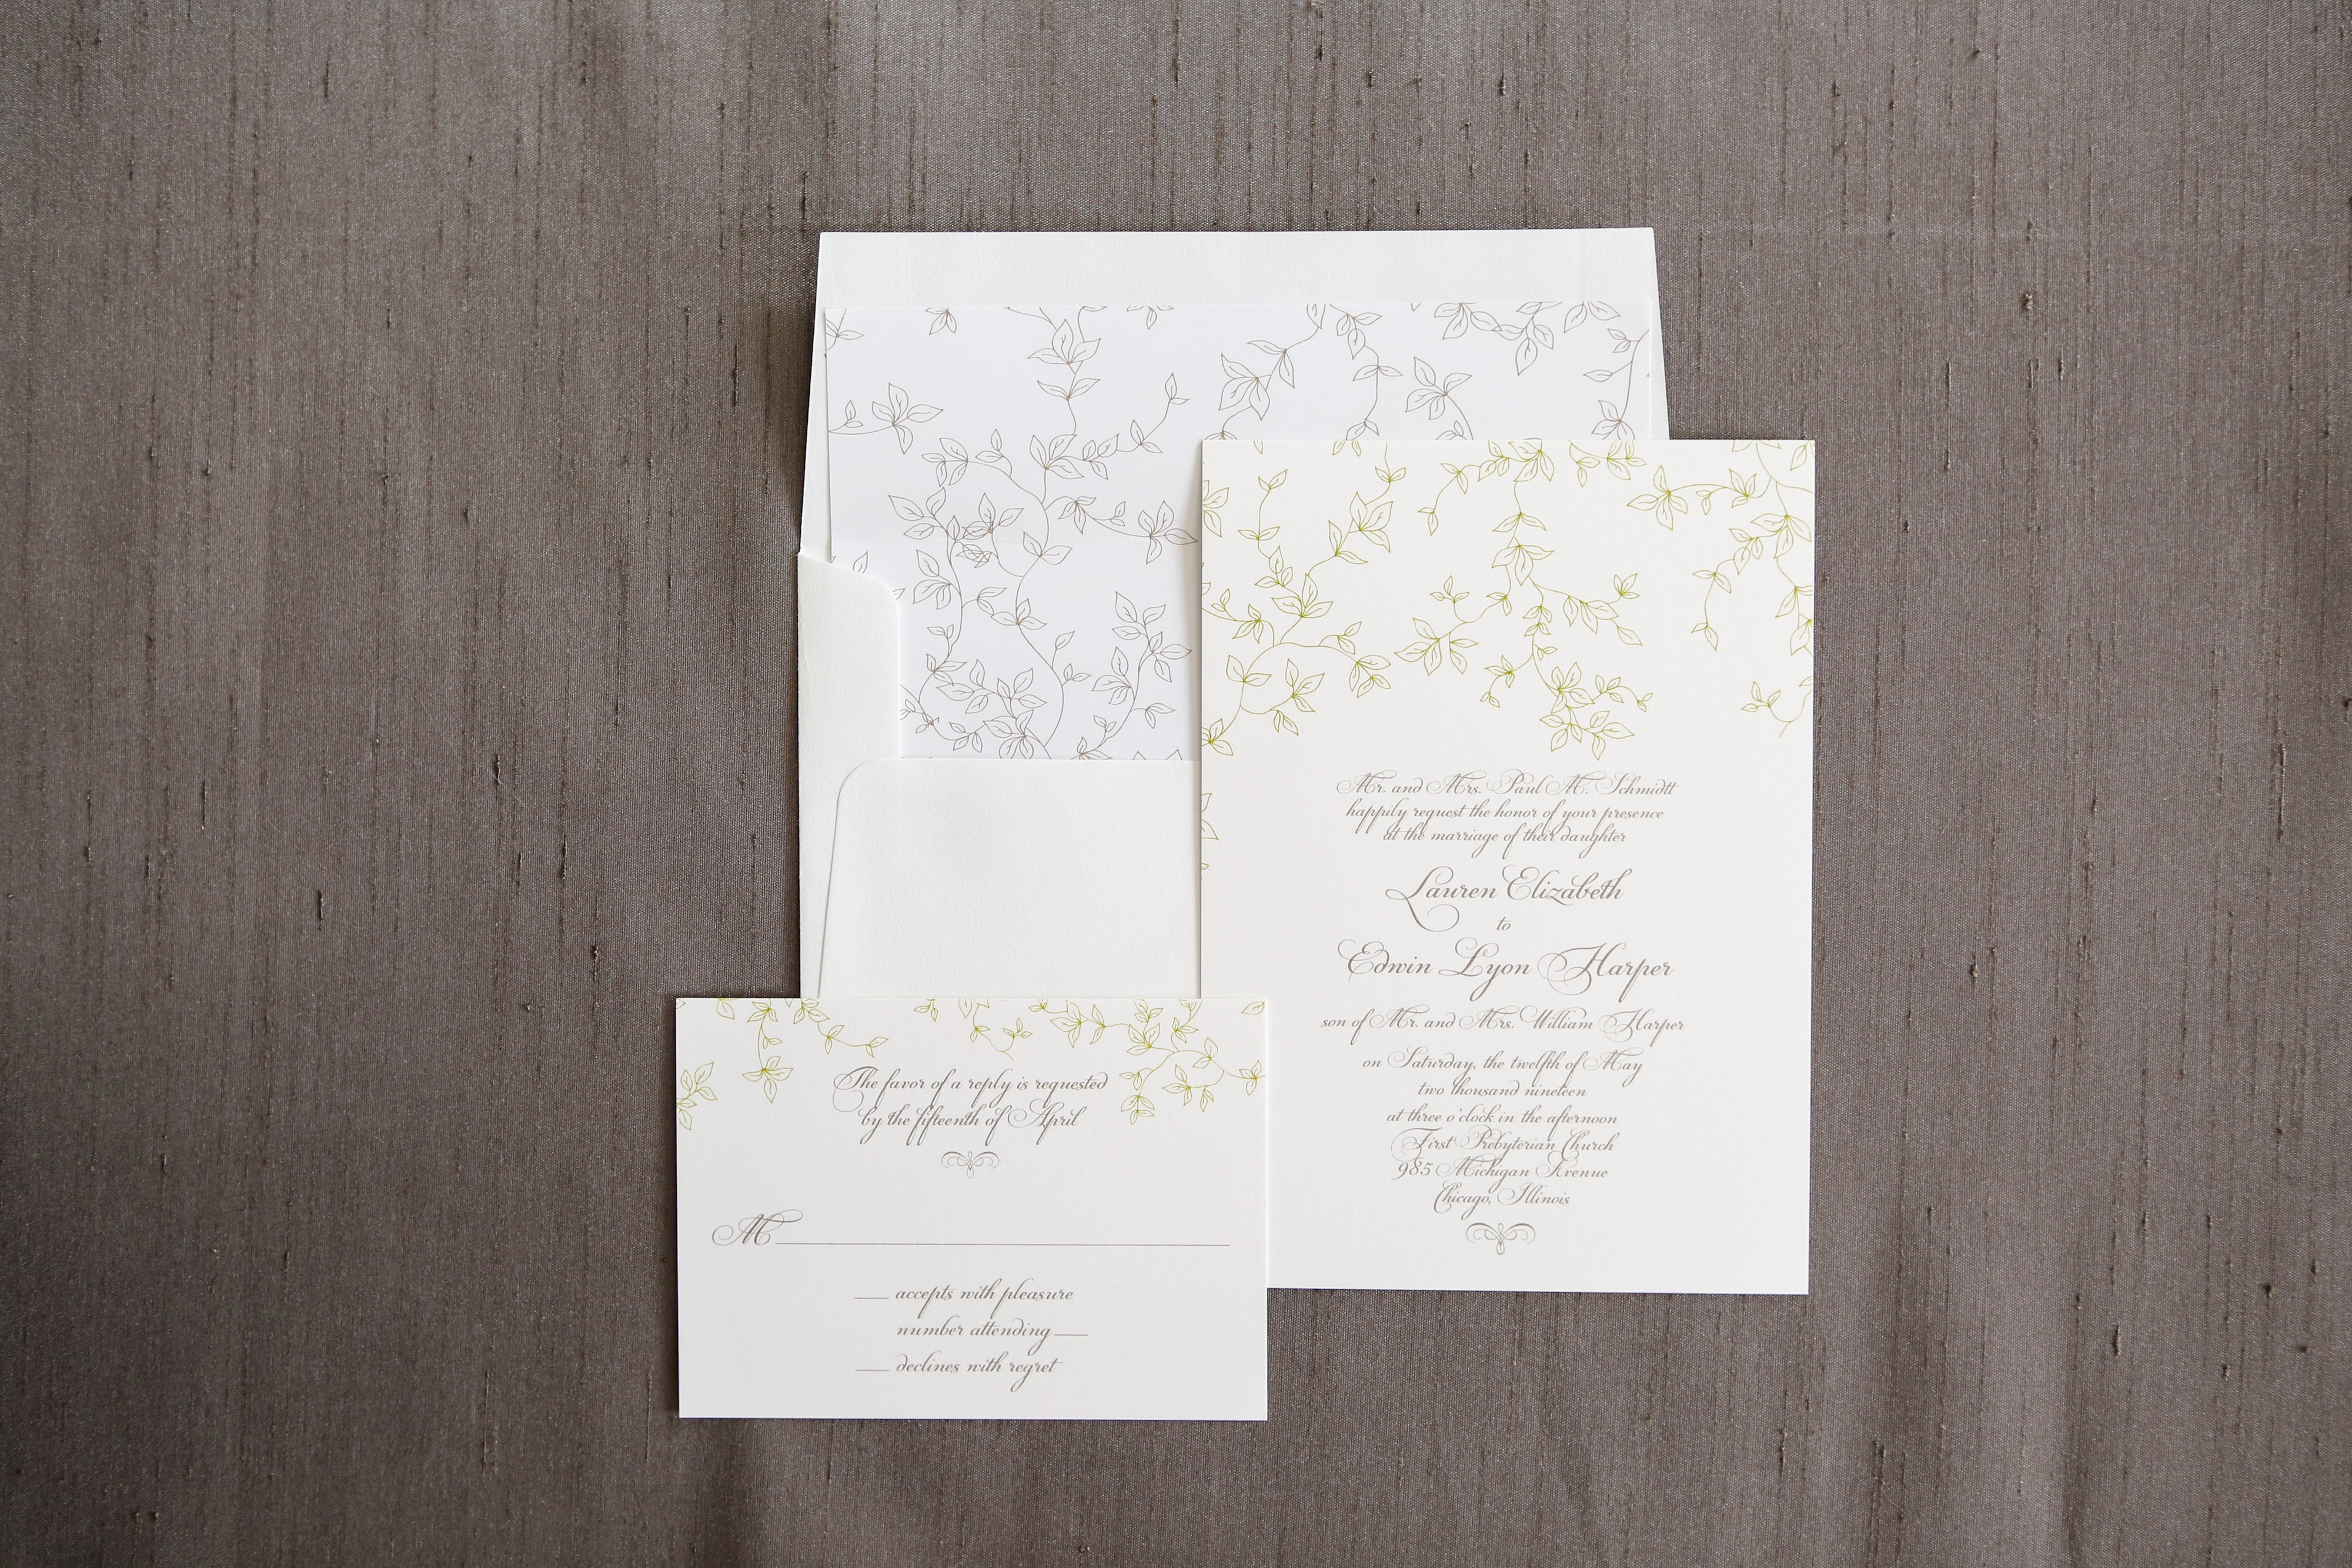 This 2-color thermography wedding invitation is delicate and ethereal.  Green vines gently frame the top of the page, while a formal script announces your event.